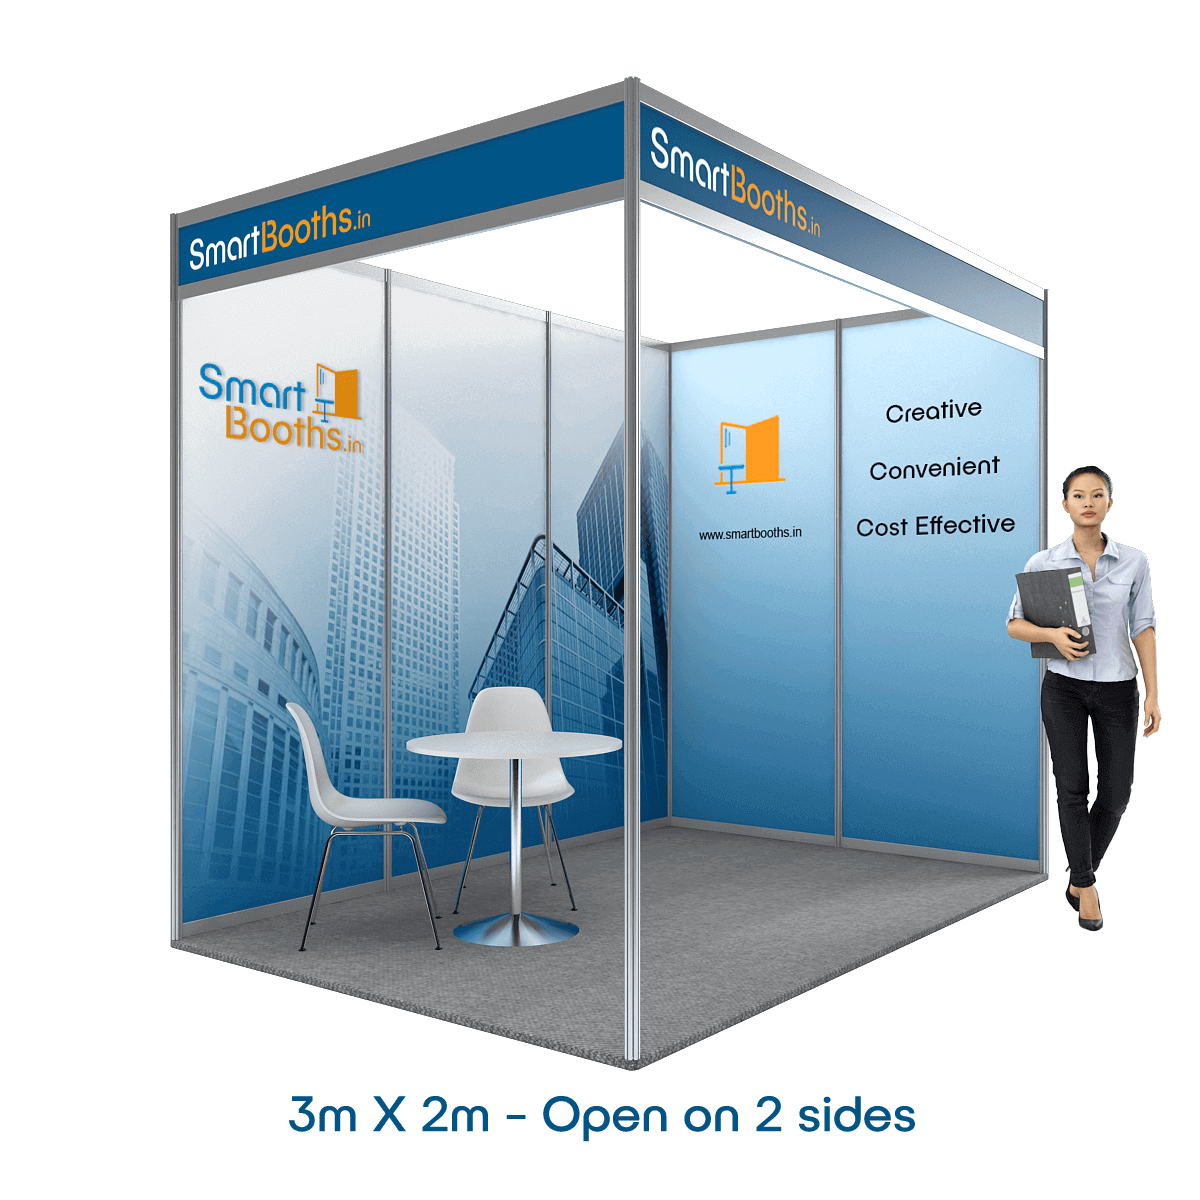 Teppiche 2m X 3m Smartbooths 3m X 2m Booth Two Sides Open 5 Panels